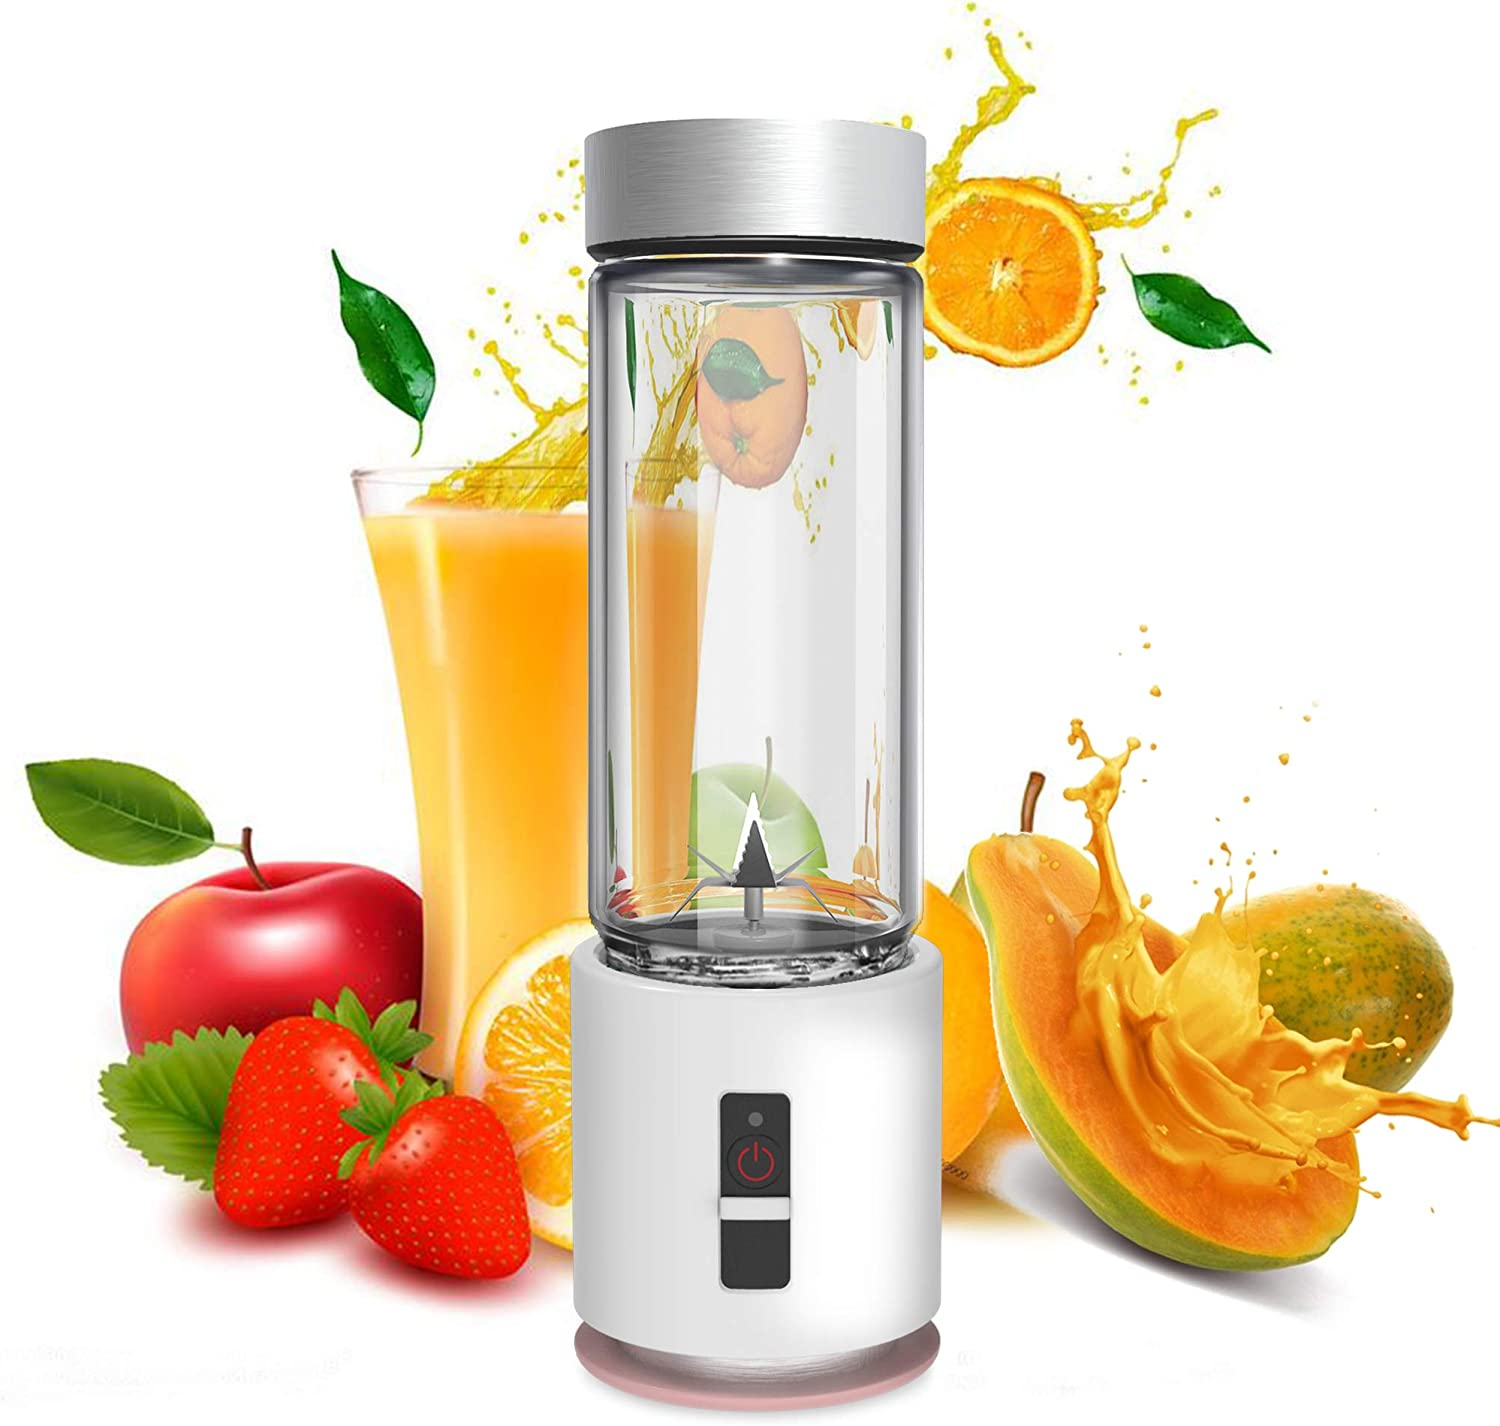 Personal Portable Blender, ENLOY Smoothie Mini Blender Portable with Updated 6 Blades, Juicer Blender Cup for Shakes and Smoothies, 4000mAh with USB Rechargeable, 13 Oz (380 ml)